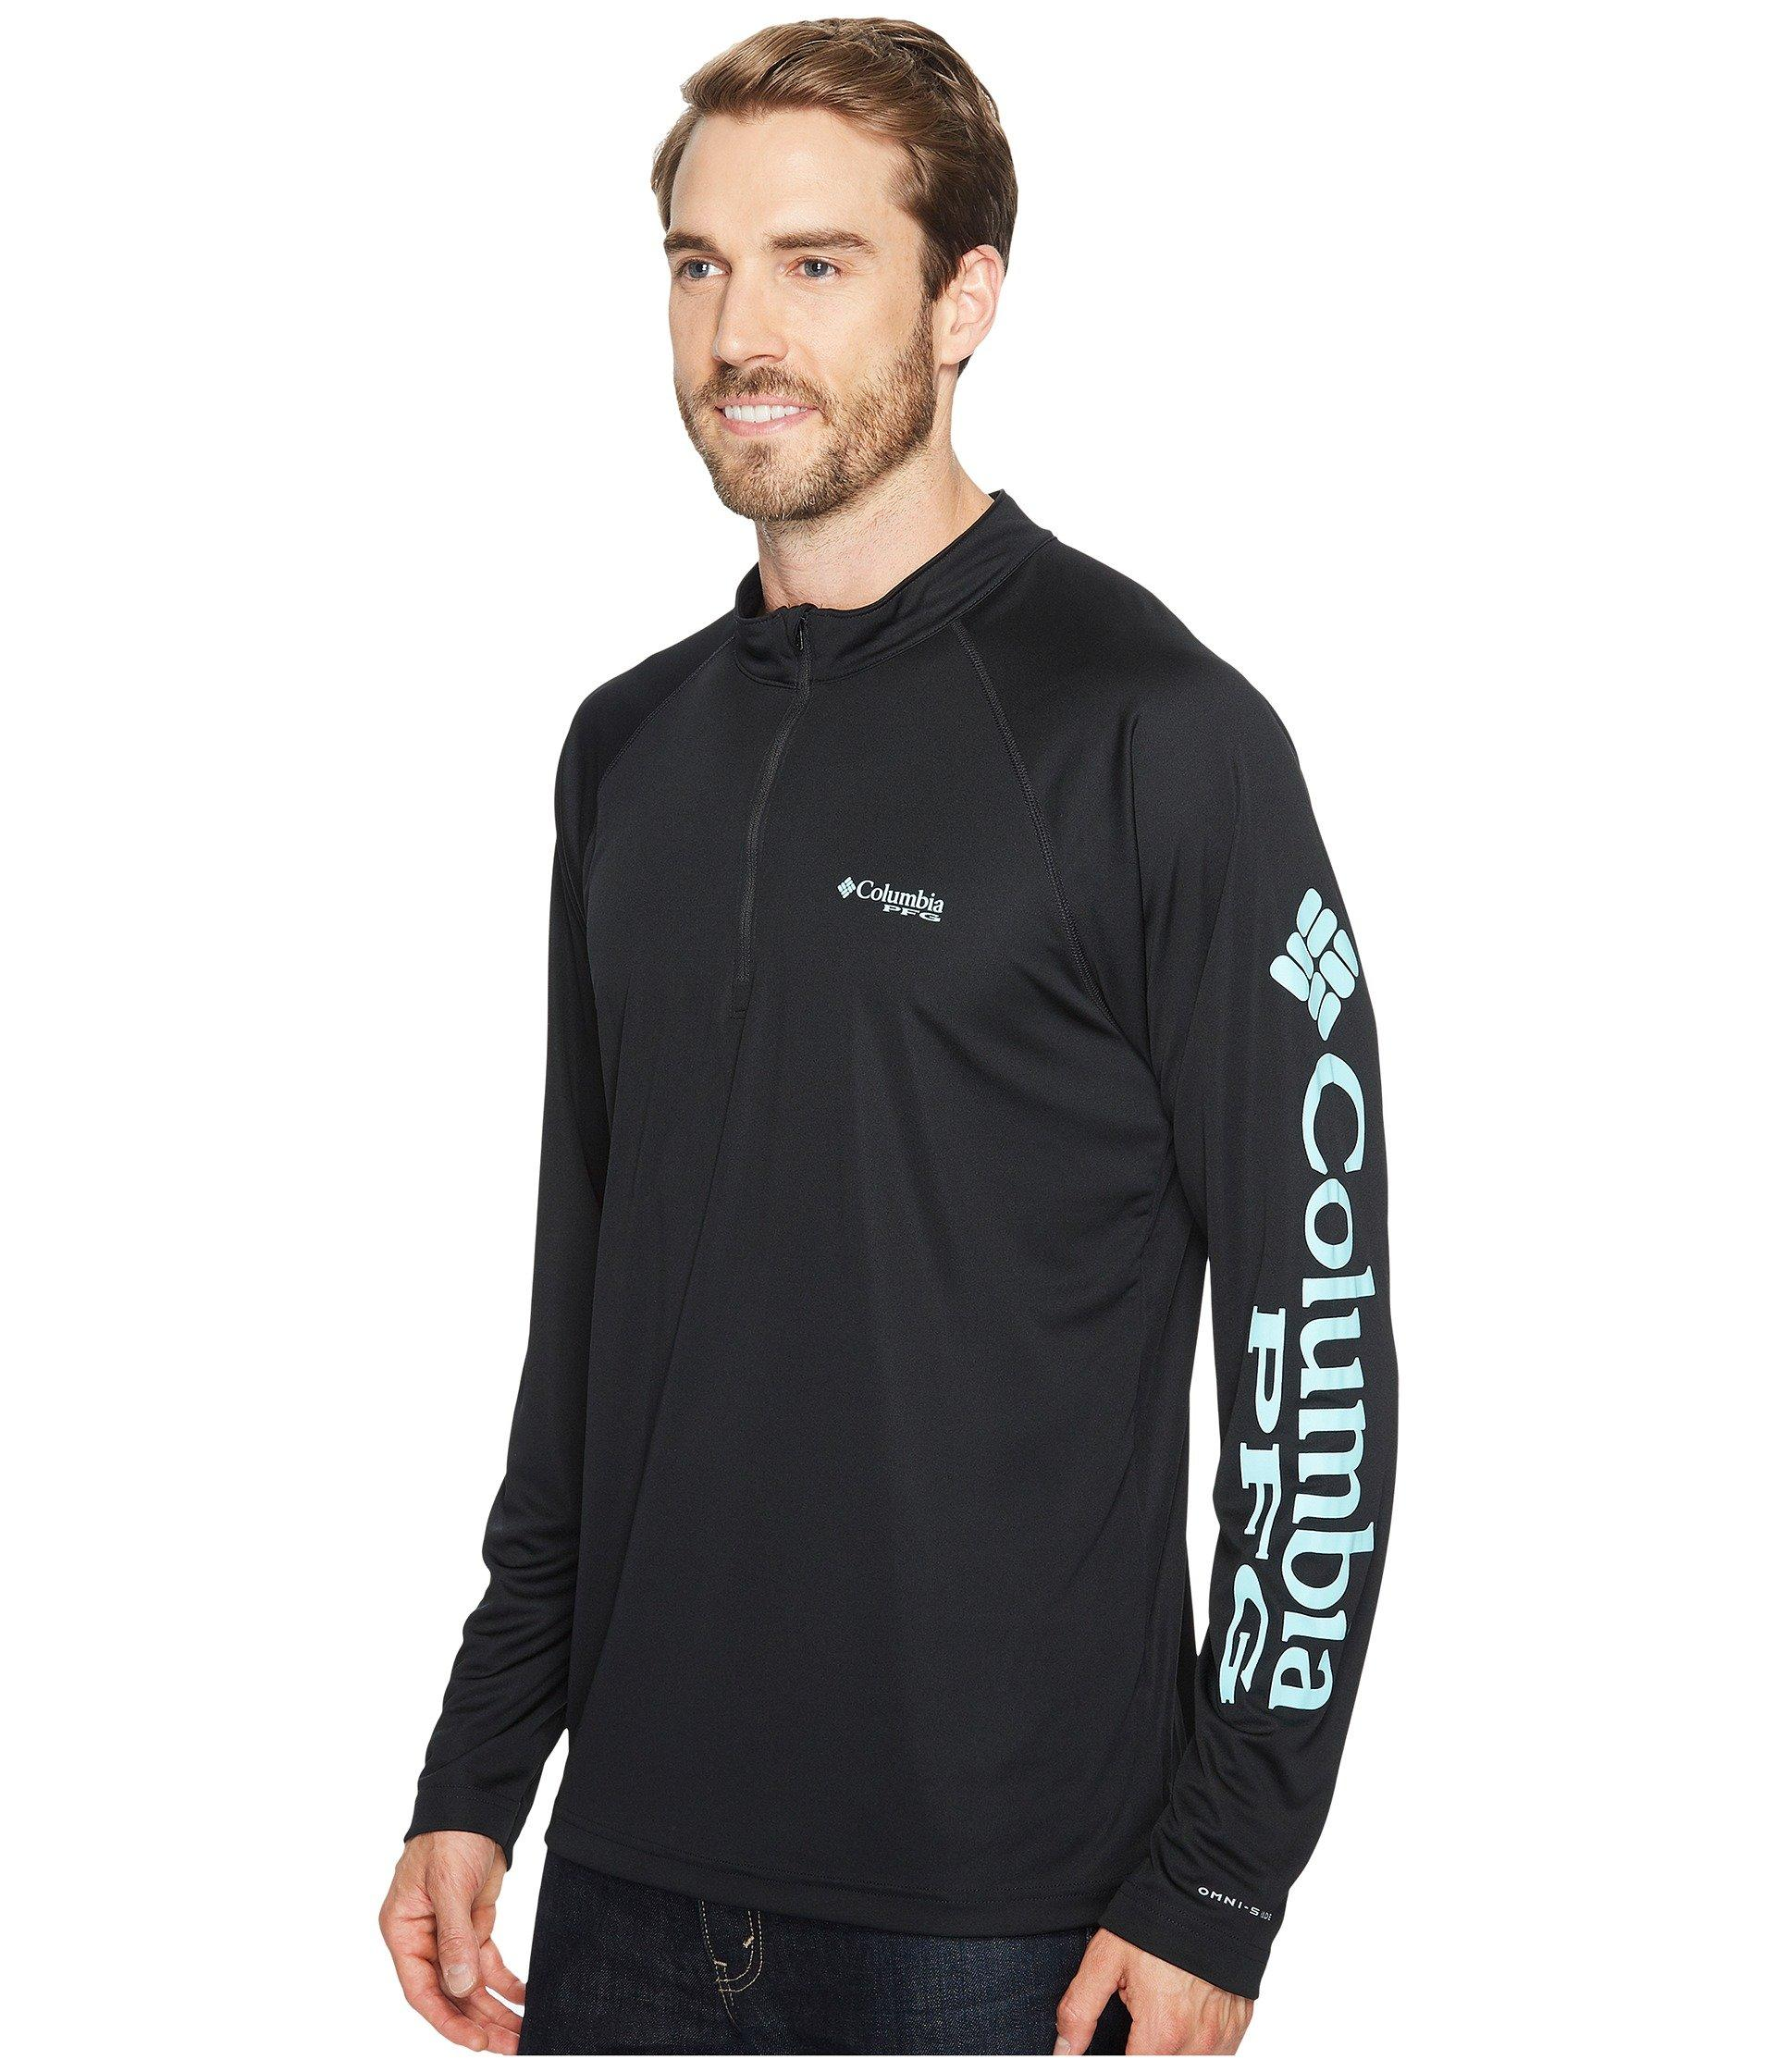 d30d2dbc89b Lyst - Columbia Terminal Tackle 1/4 Zip in Black for Men - Save 7%